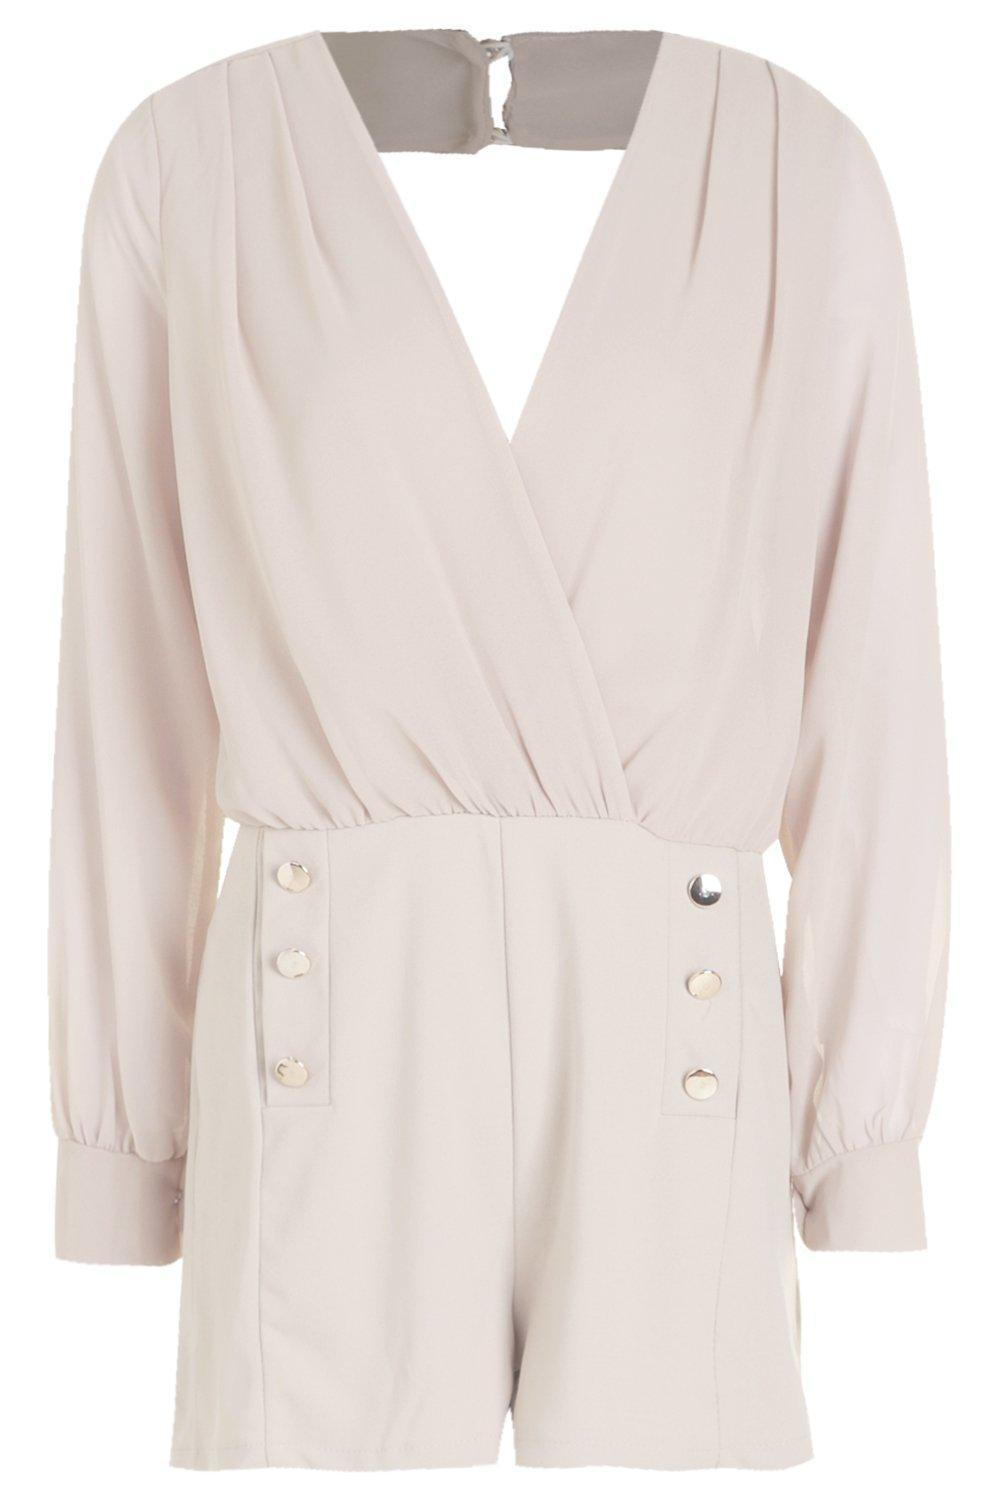 fbcf54c39d Boohoo Military Button Playsuit in Natural - Lyst